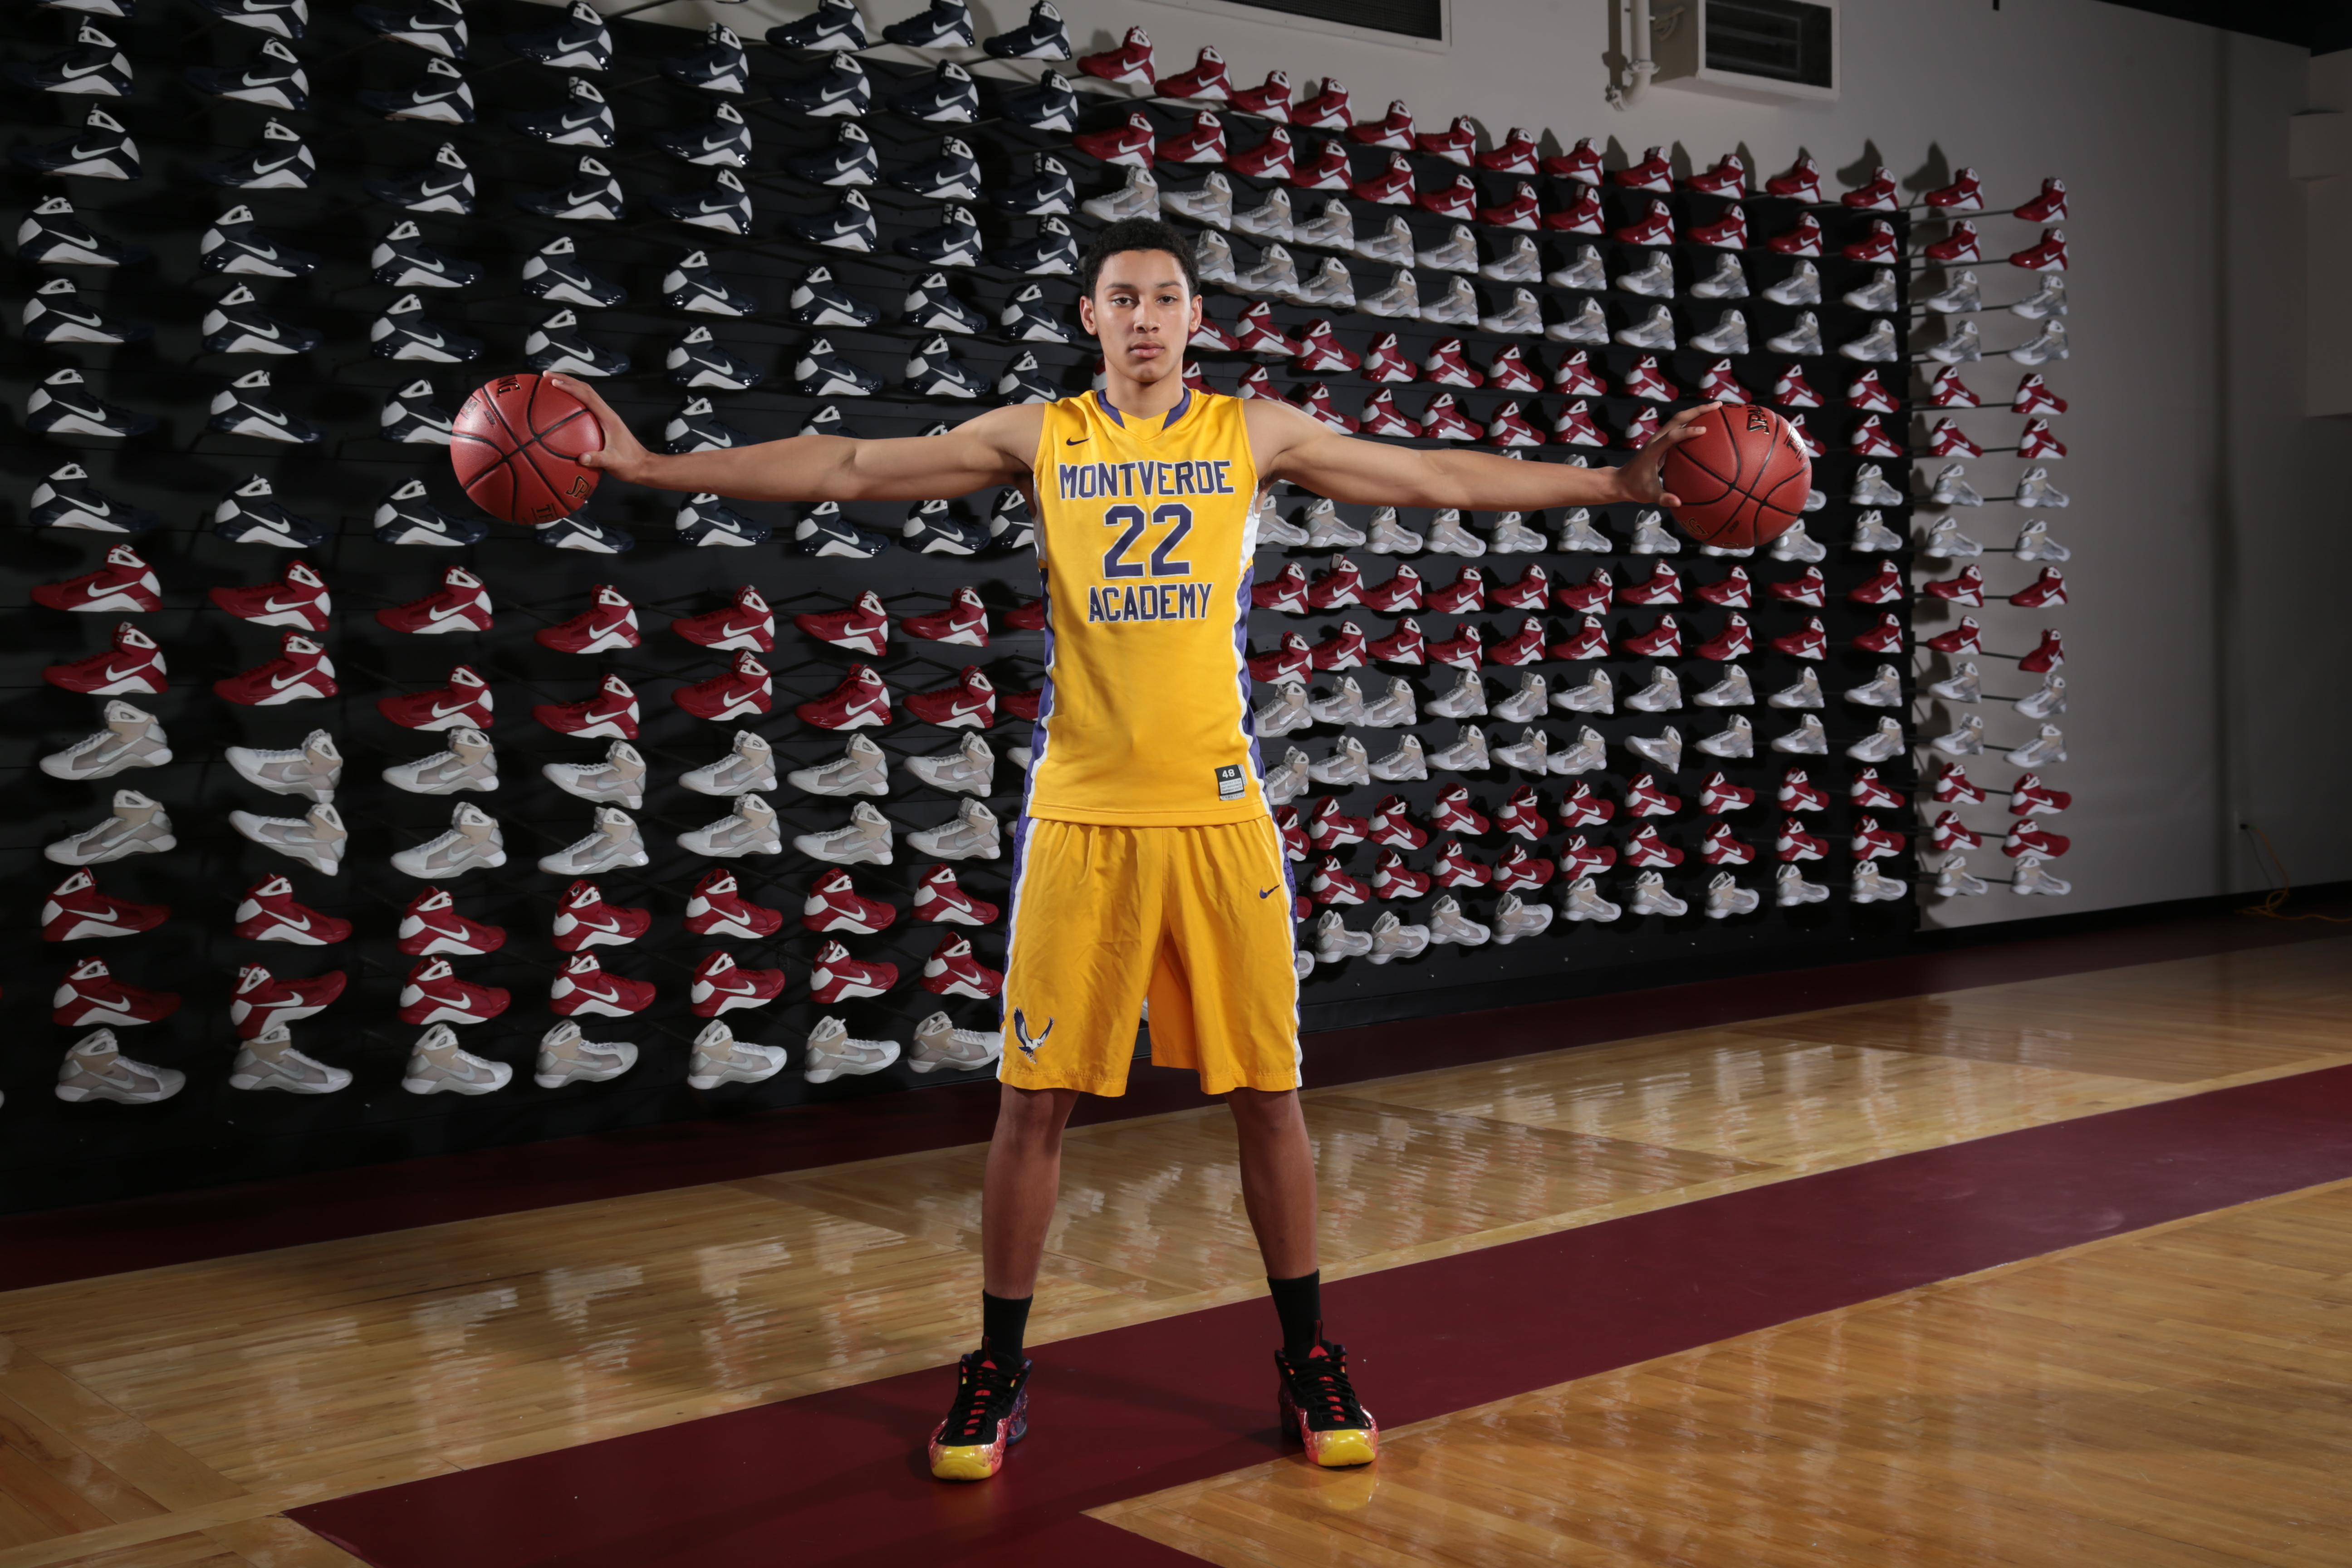 Ben Simmons, the consensus No. 1 player in the 2015 class, leads top-ranked Montverde (Fla.) Academy.